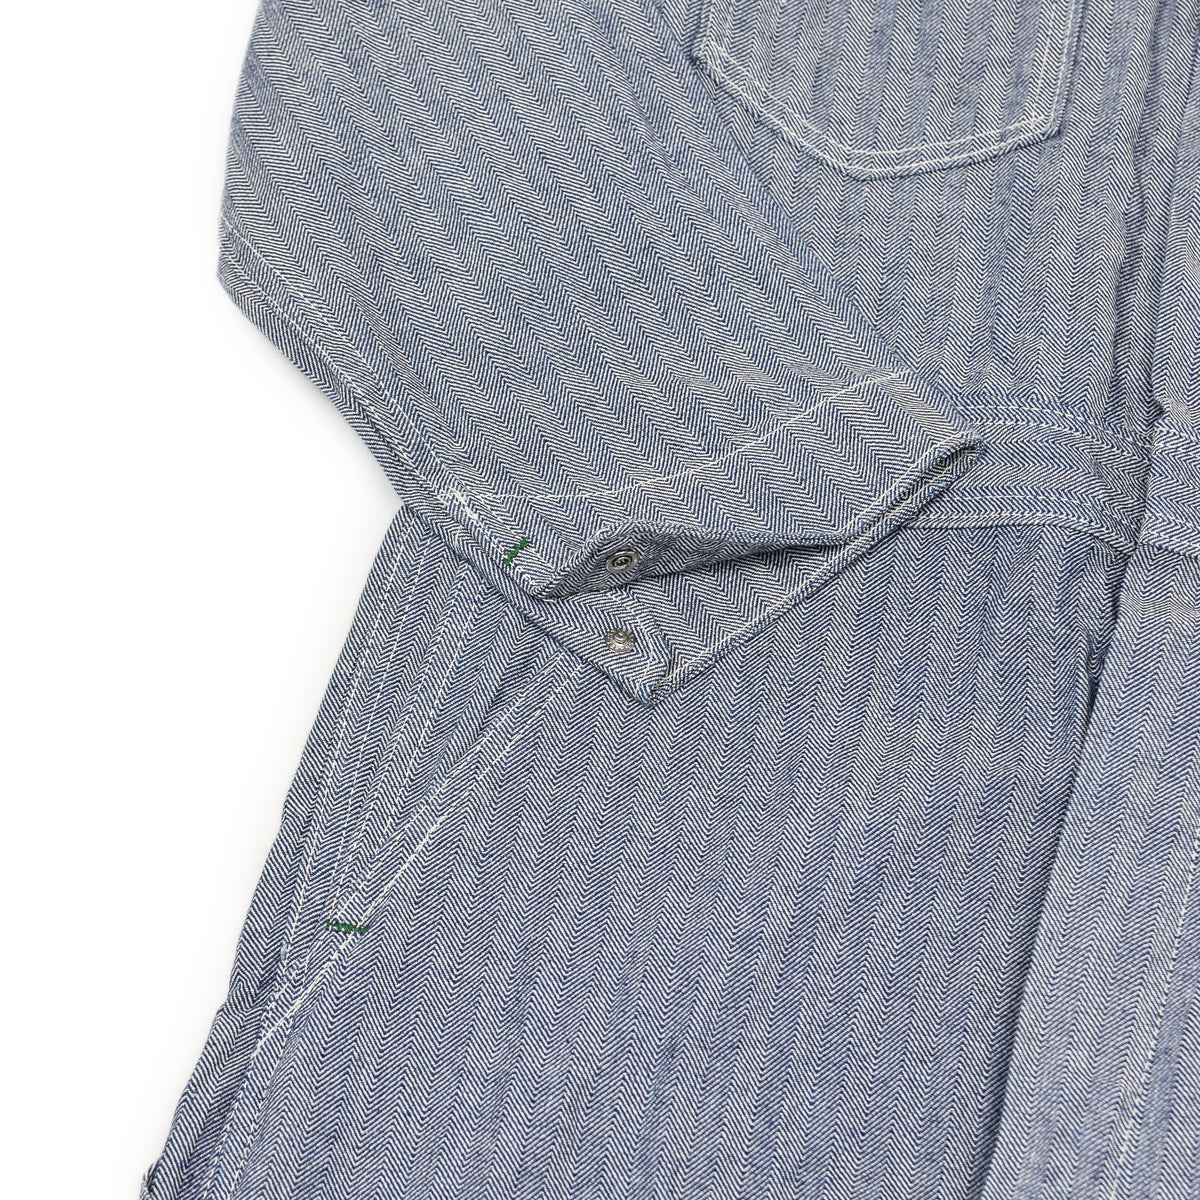 Deadstock Vintage Key Imperial Workwear Coverall Blue Herringbone Boiler Suit M cuff